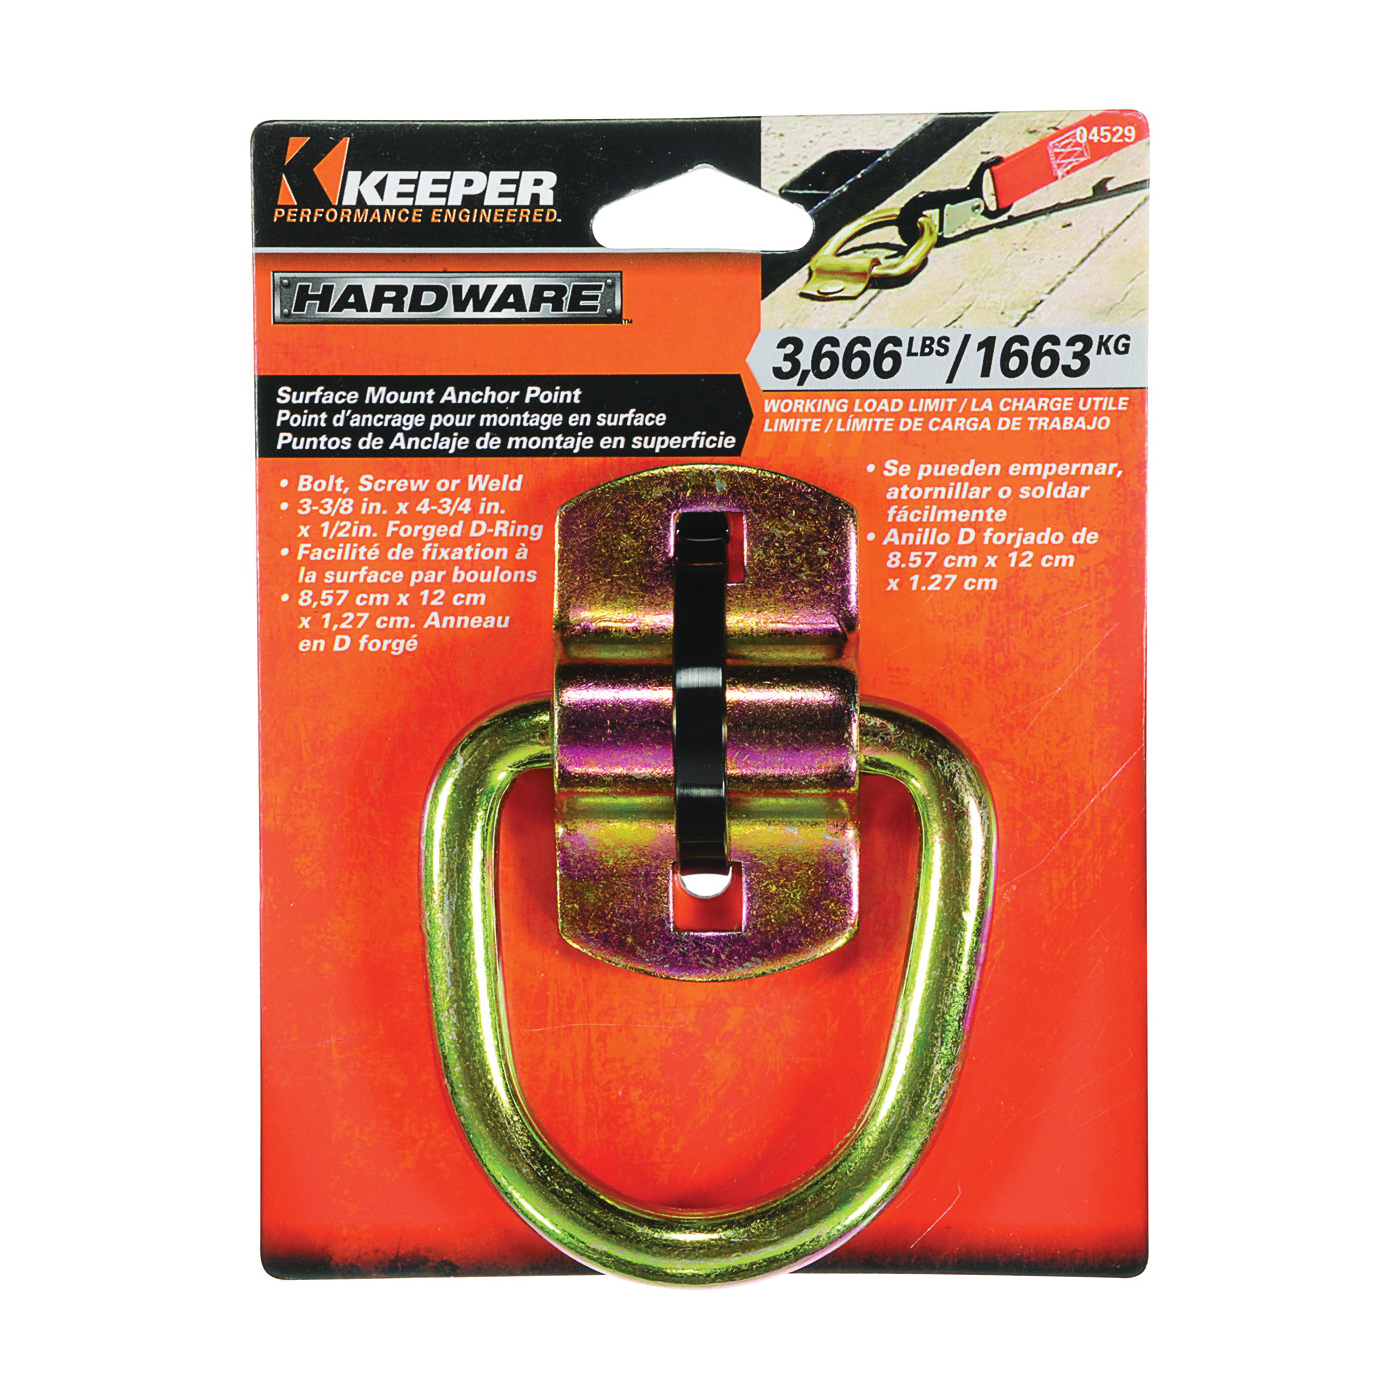 Picture of KEEPER 04529 Anchor Point Wire Ring, Heavy-Duty, Steel